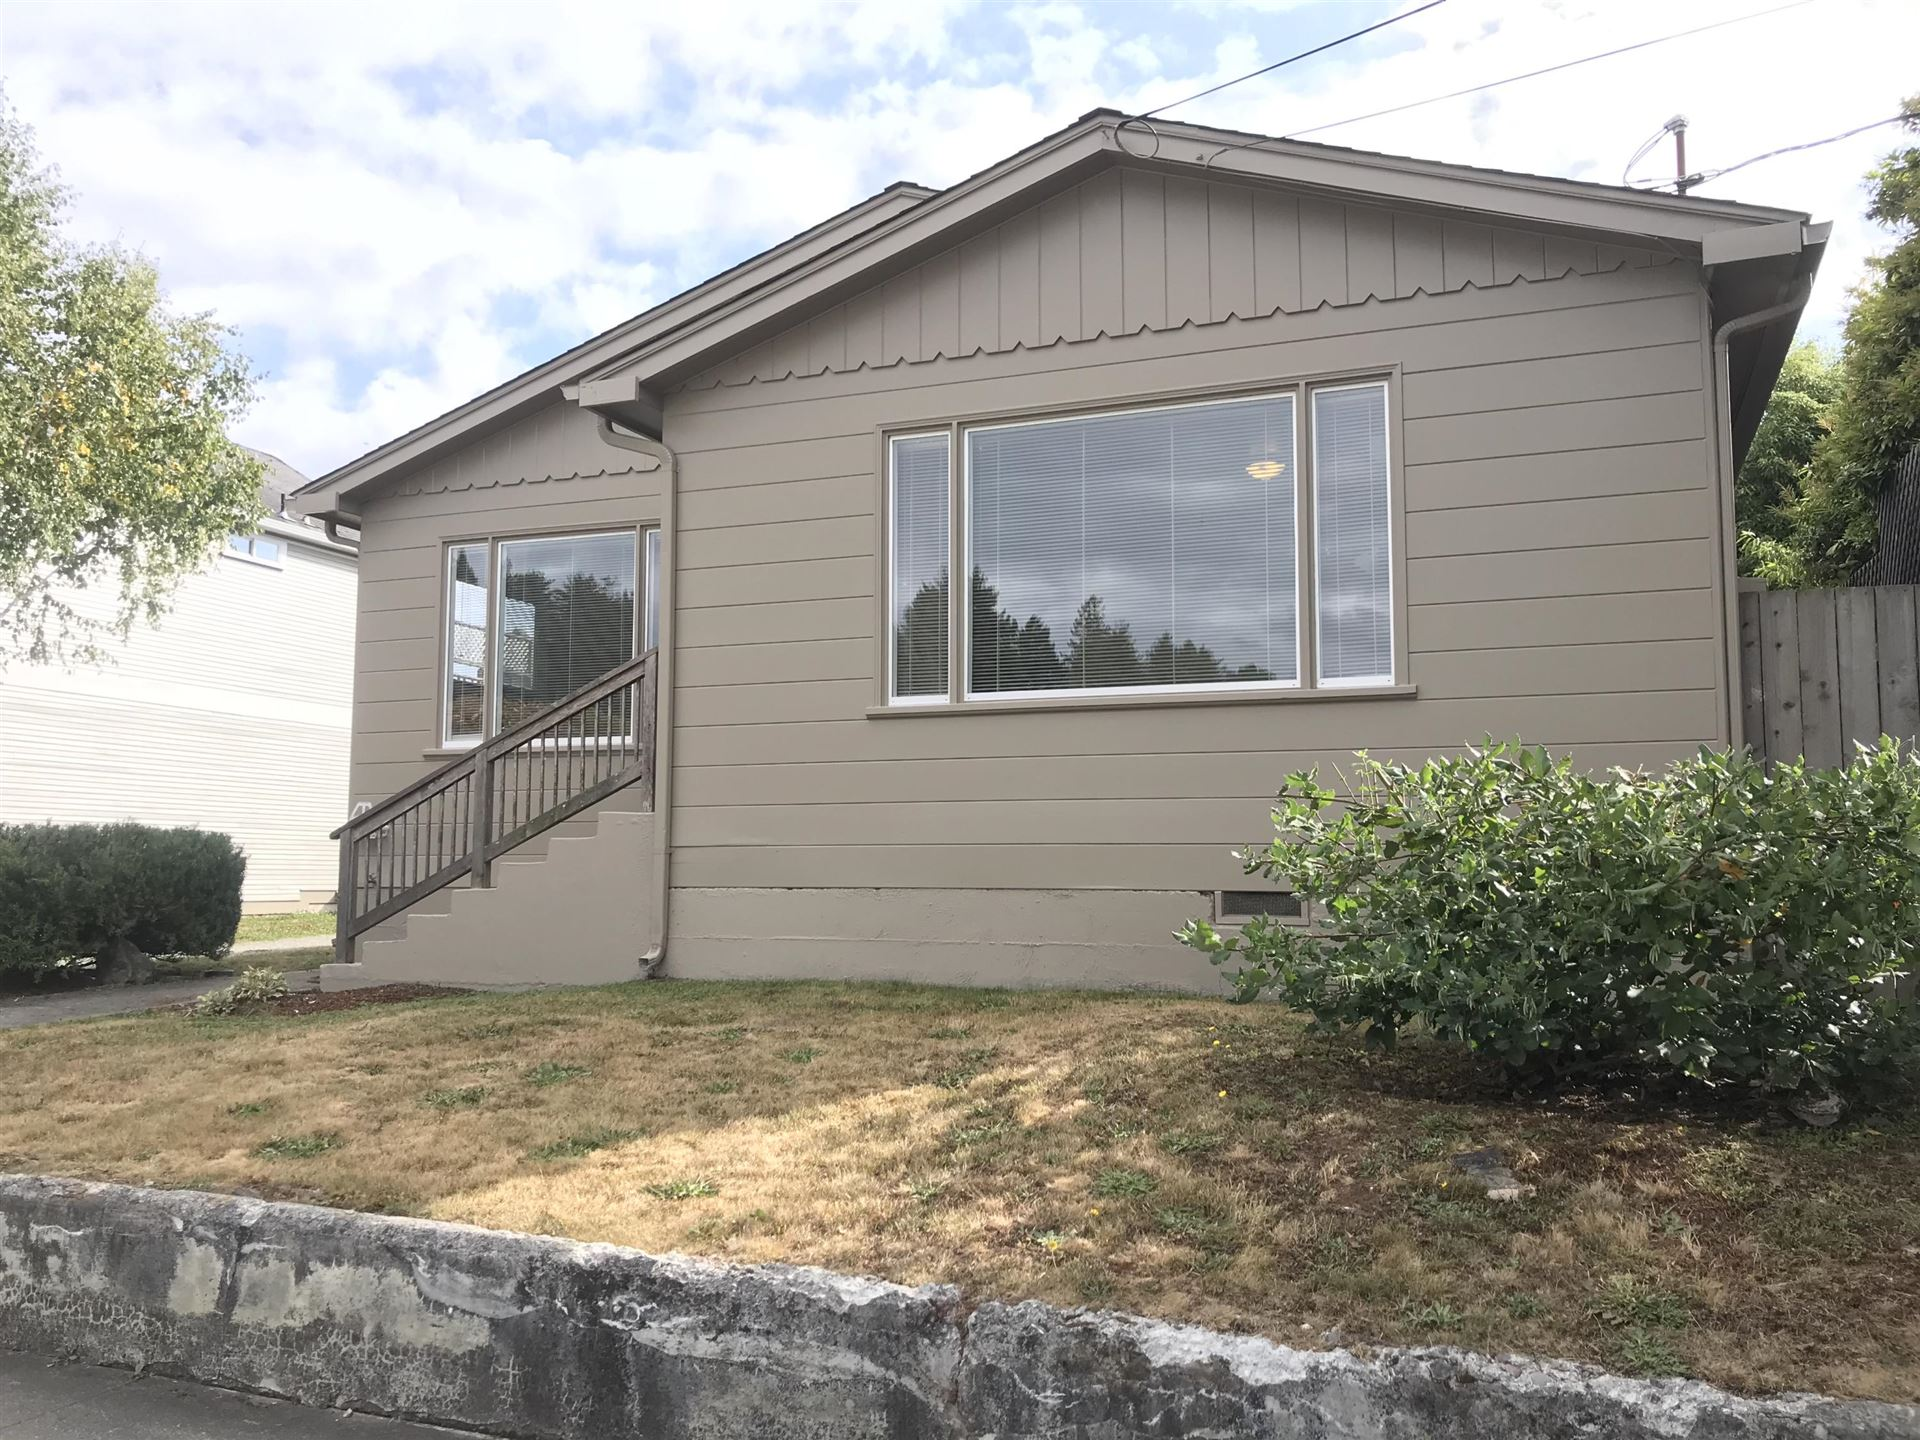 255 13th Street, Arcata, CA 95521 - MLS#: 257443